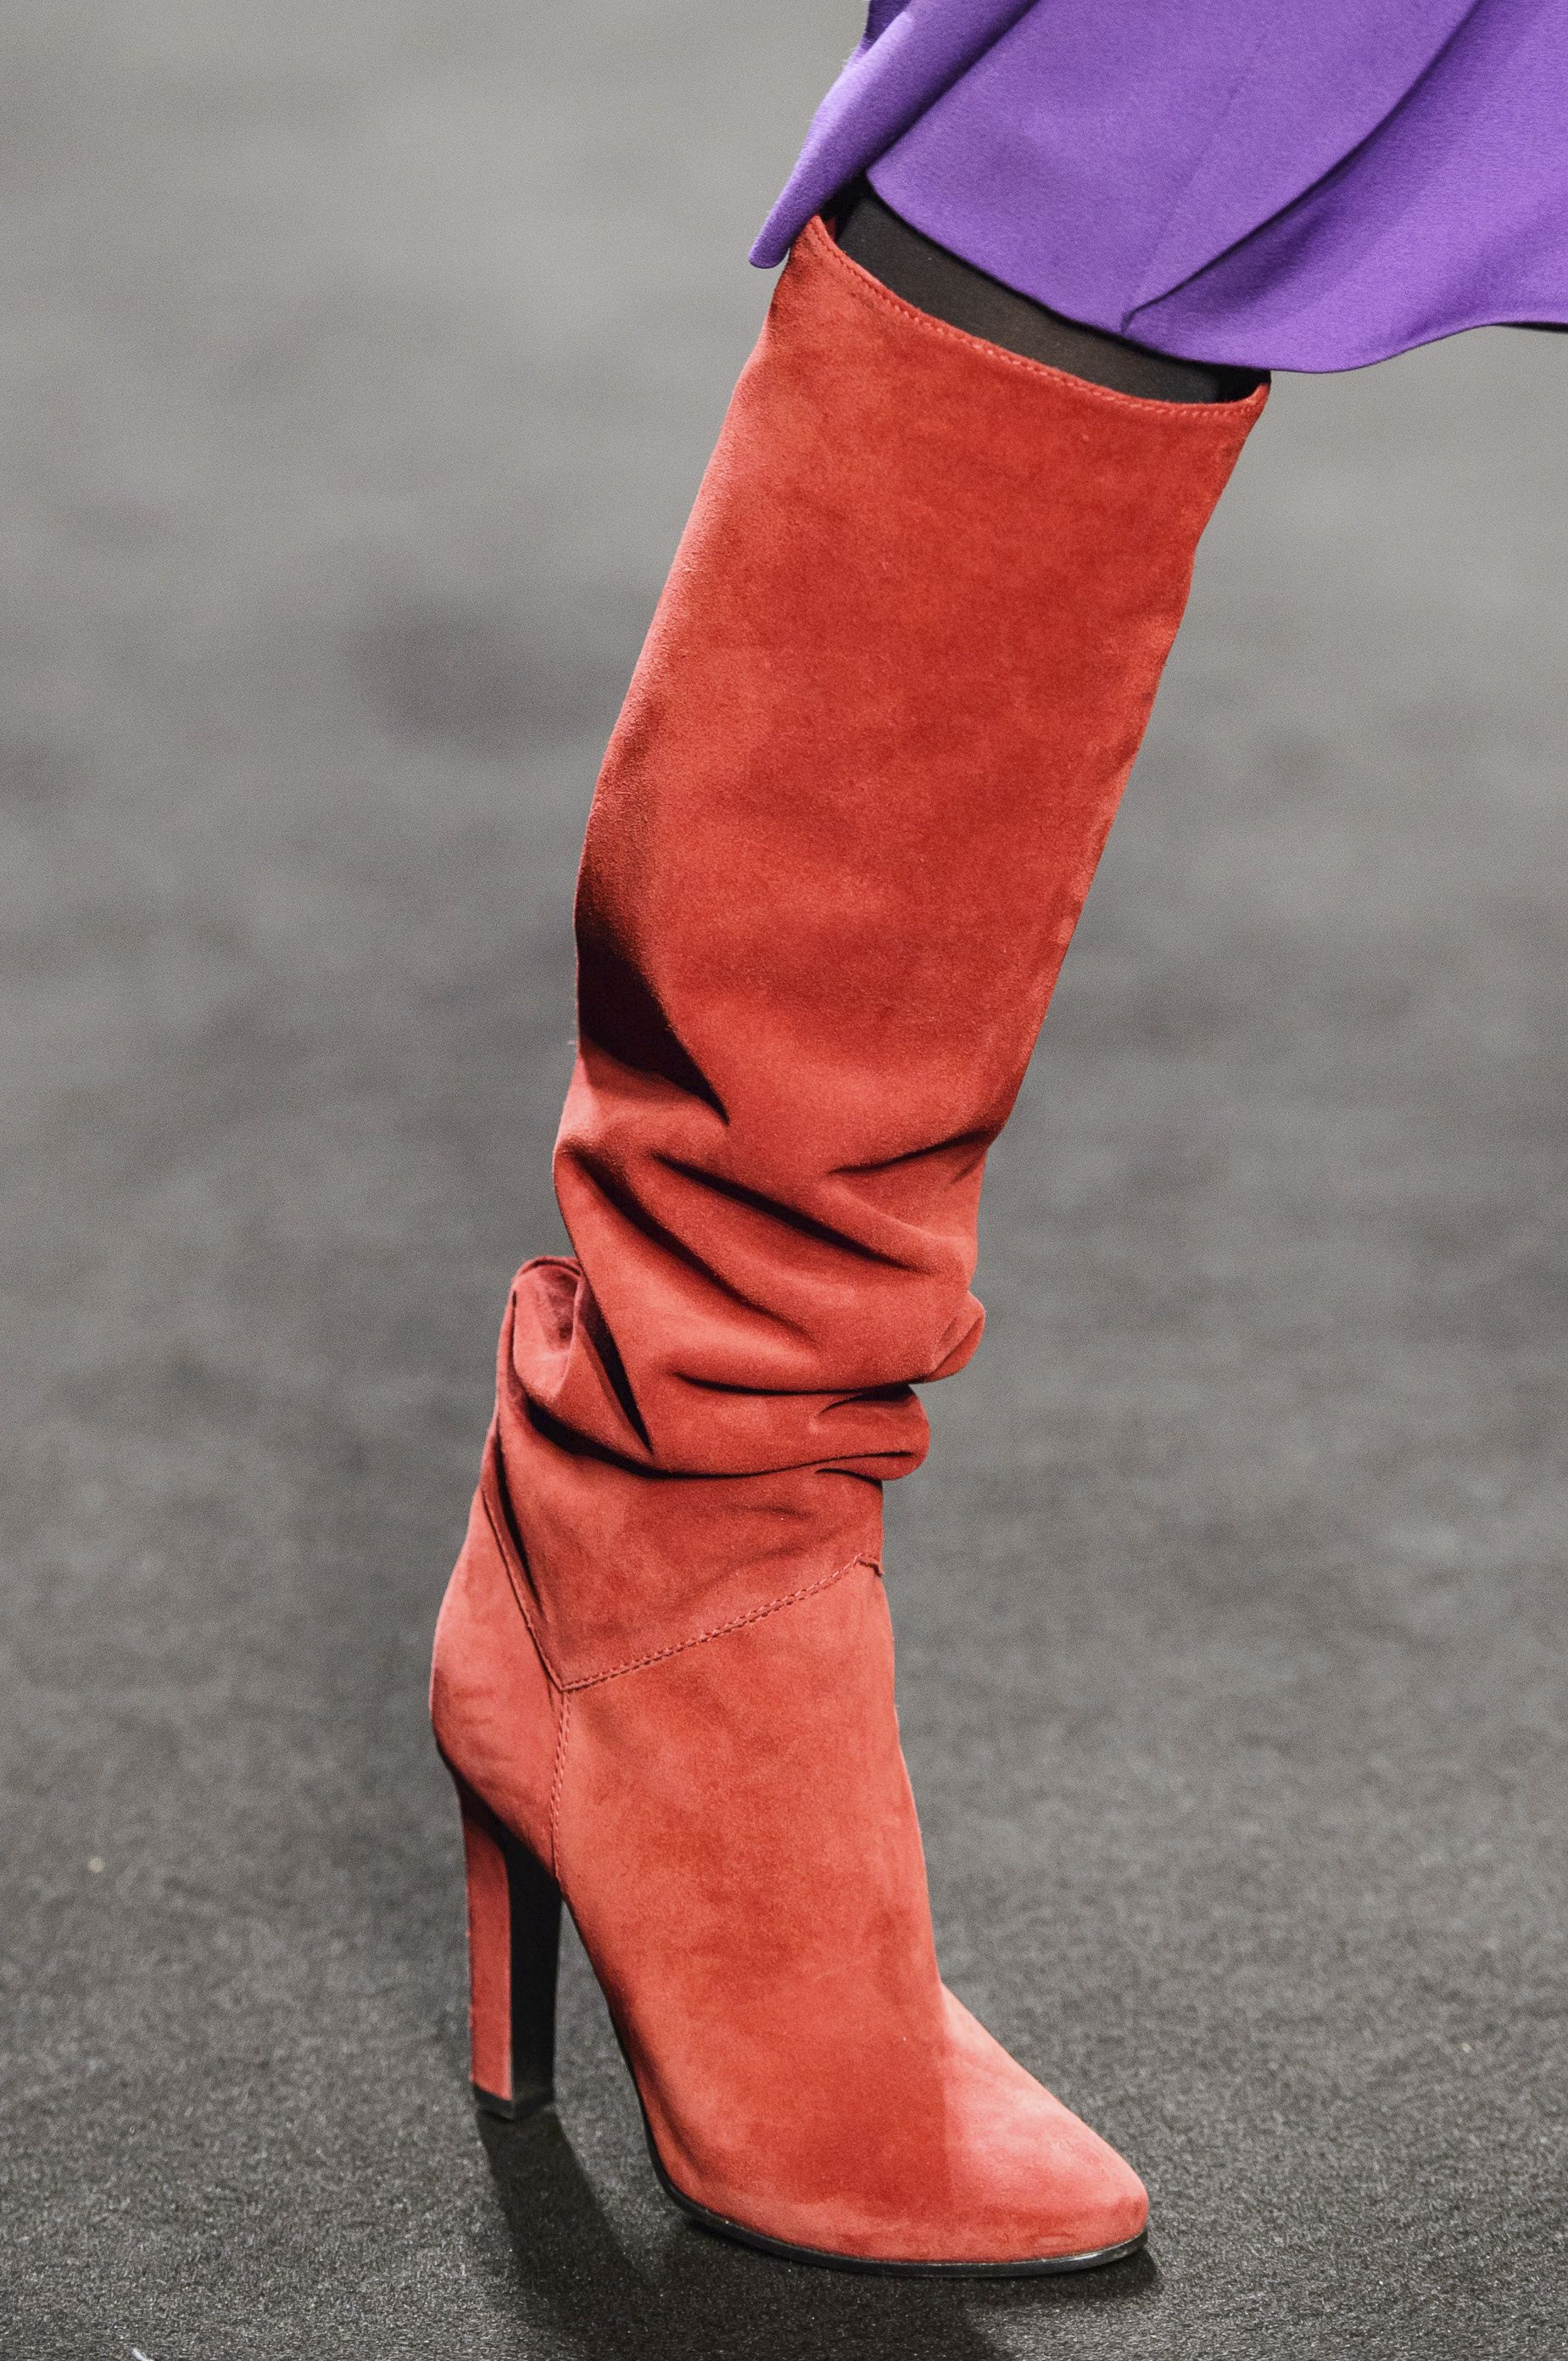 Trendy Boots Fall-Winter 2019 recommend